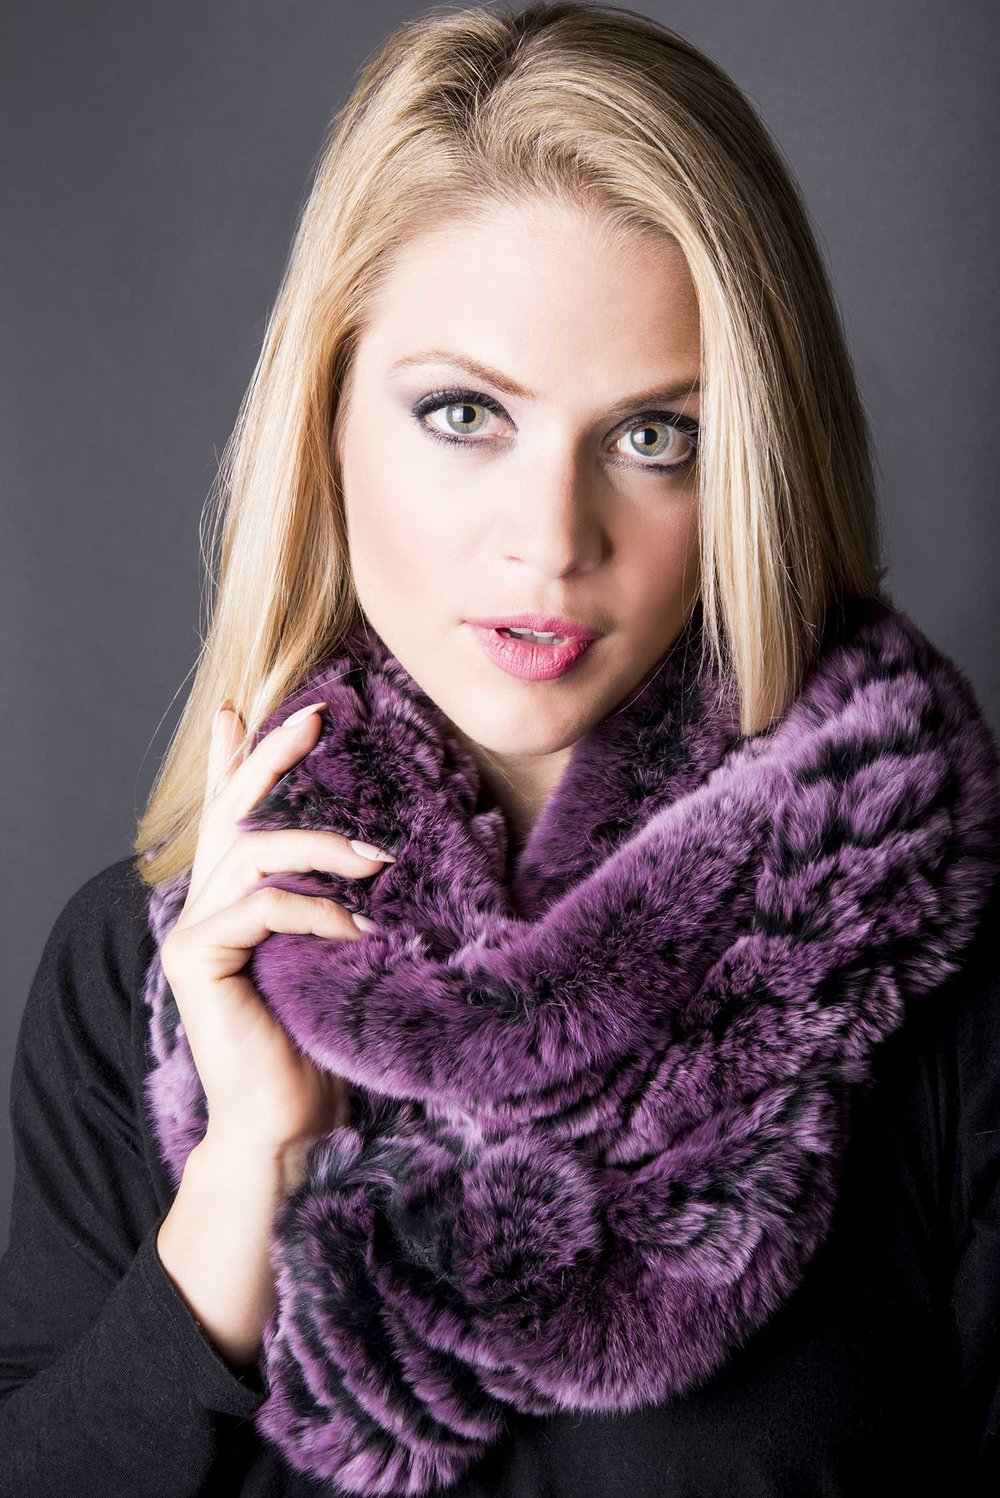 pat-flesher-furs-accessories-scarf-blue-indigo-women.jpg